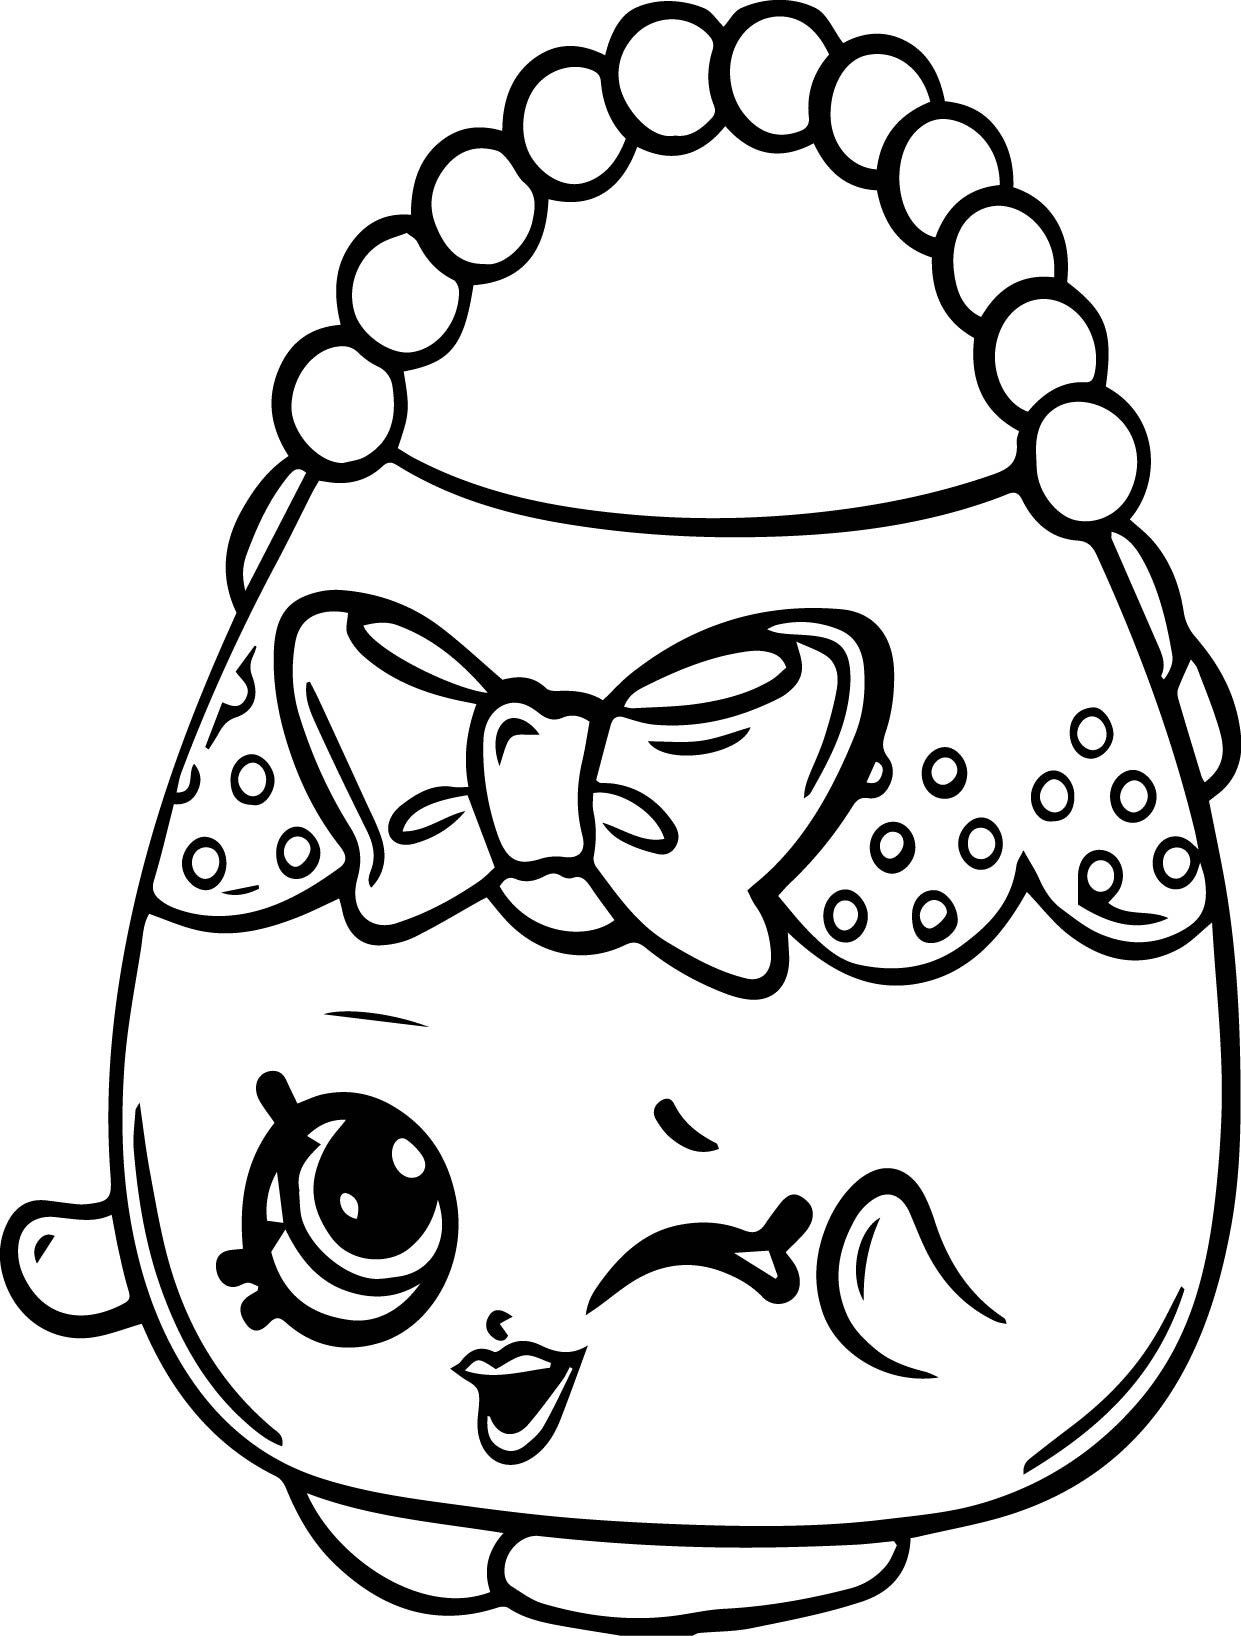 Coloring Pages For Kids Shopkins Coloring Pages Lol Pet Coloring Pages Shopkins To Print Shopkin Coloring Pages Shopkins Colouring Pages Shopkins Picture